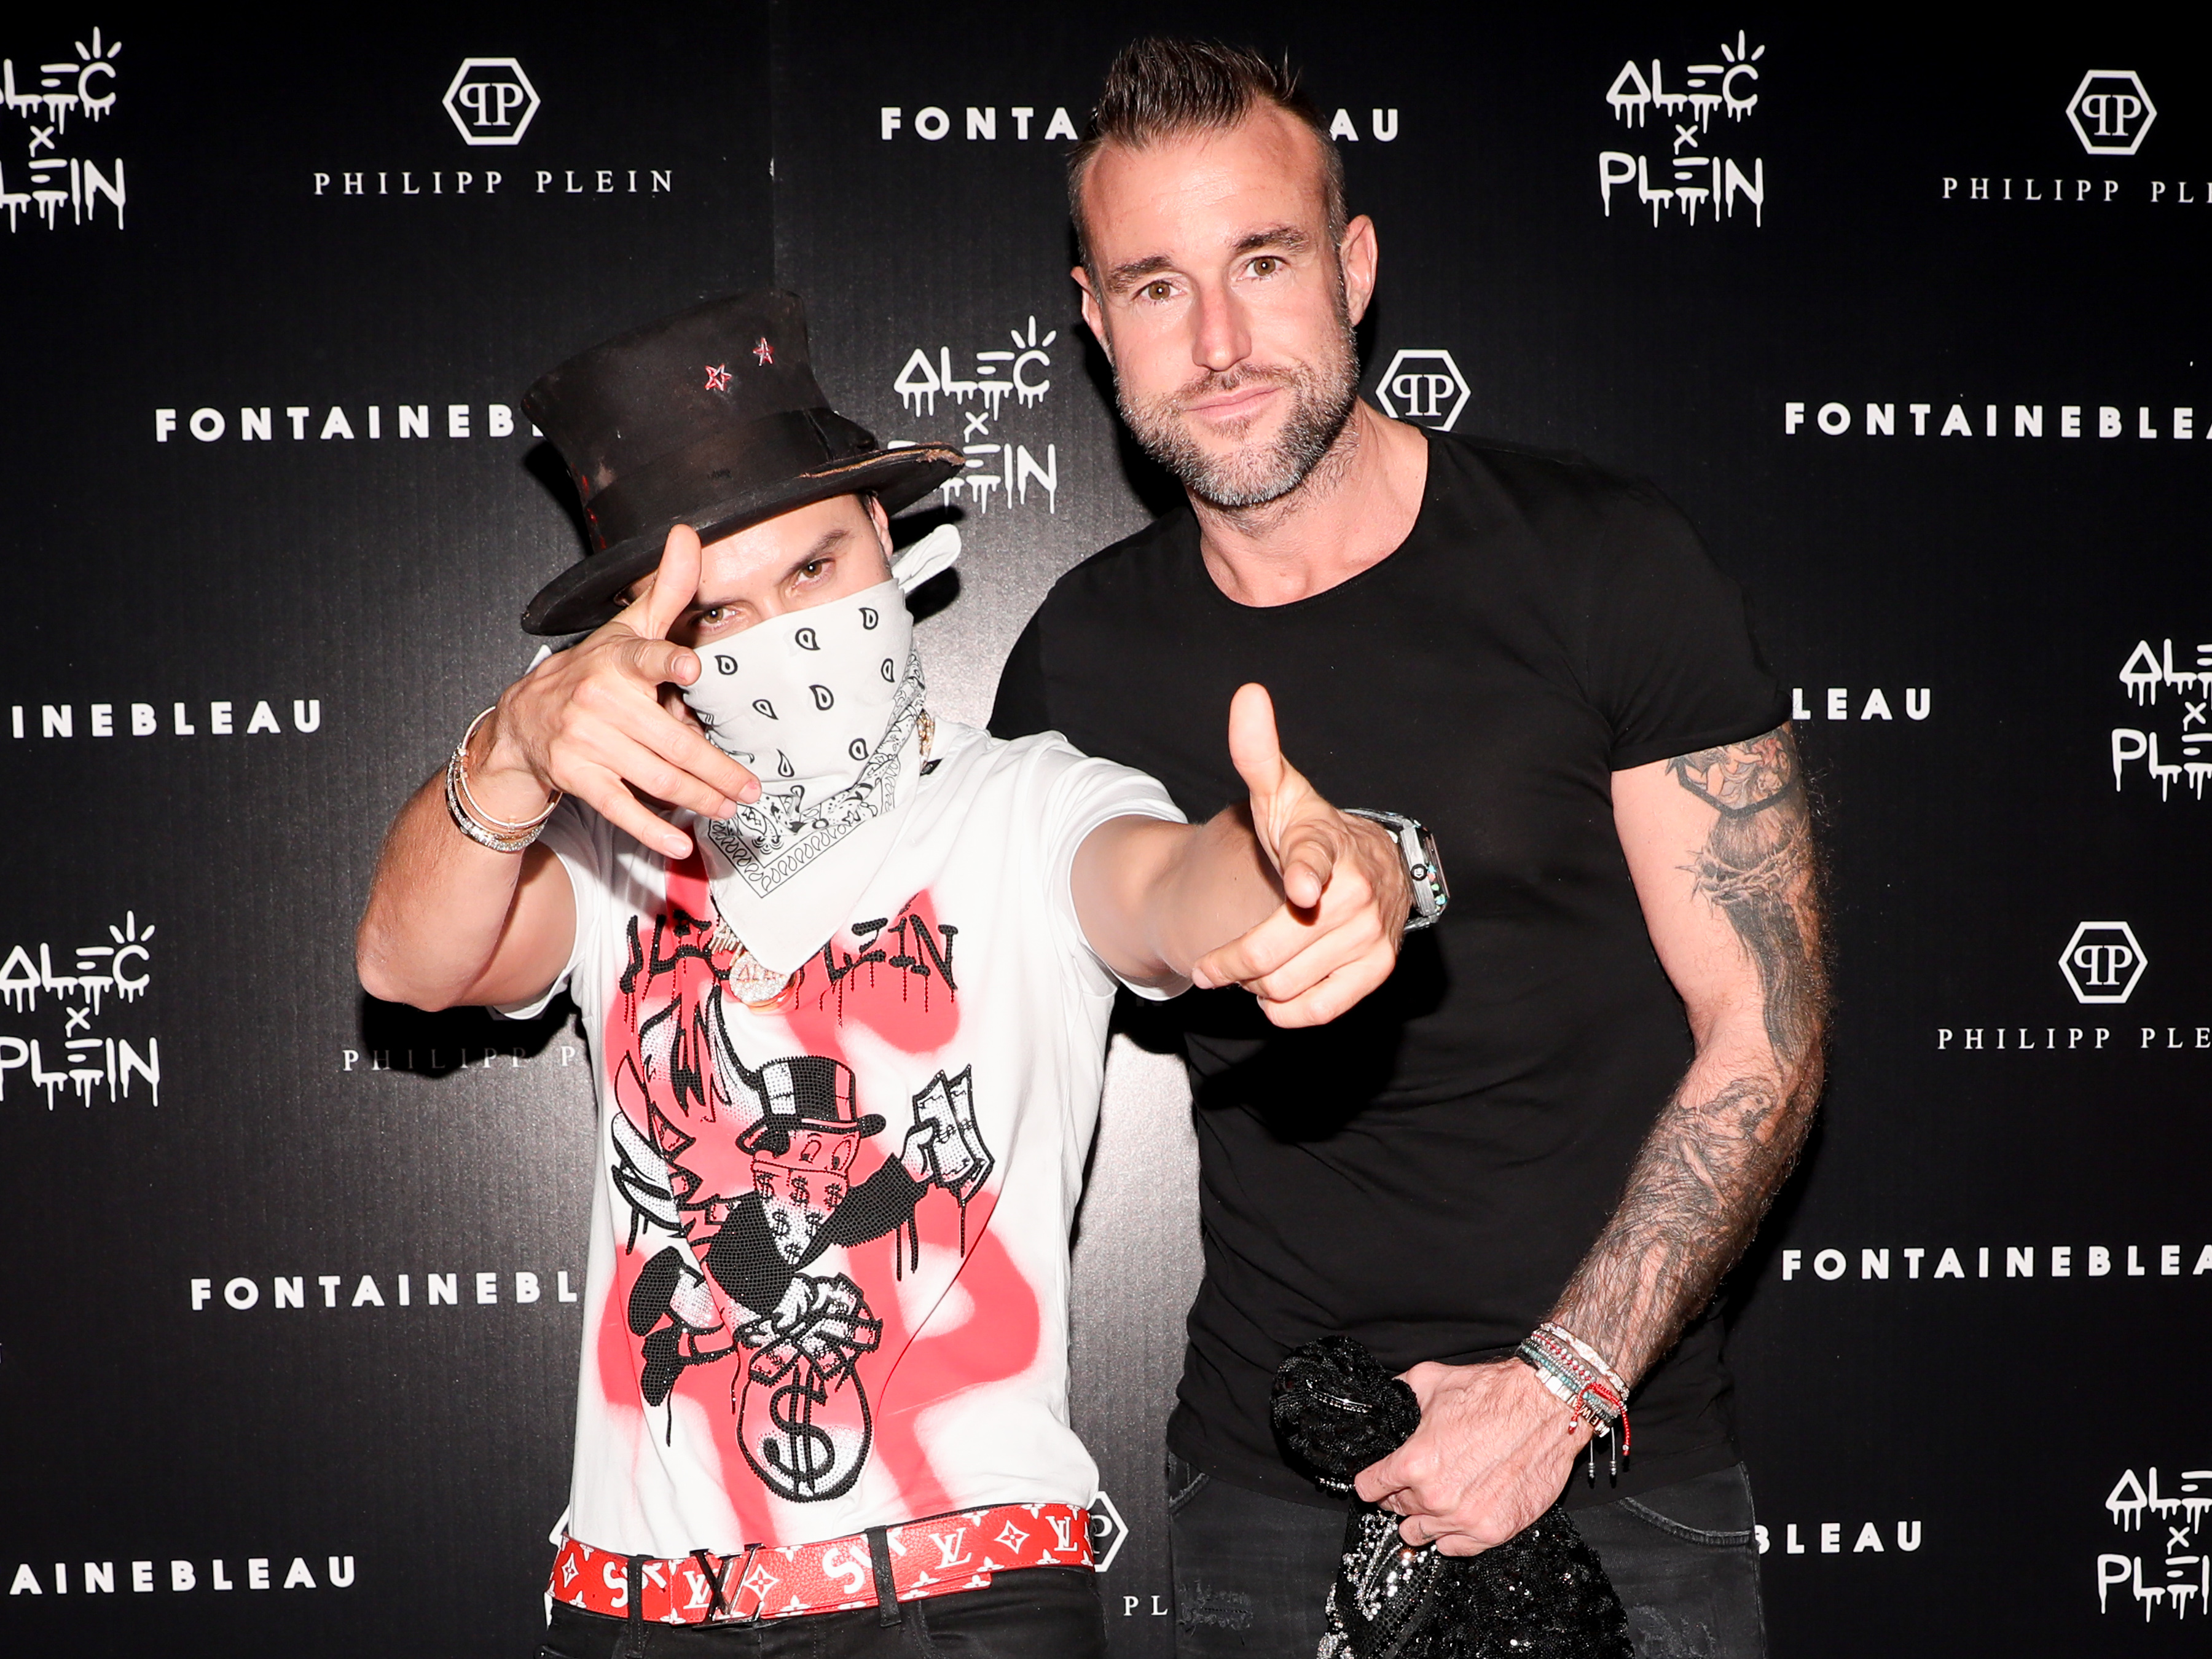 AlecxPlein Pop up store event Art Basel Alec Monopoly and Philipp Plein 16 - Новый трек украинской группы ONUKA